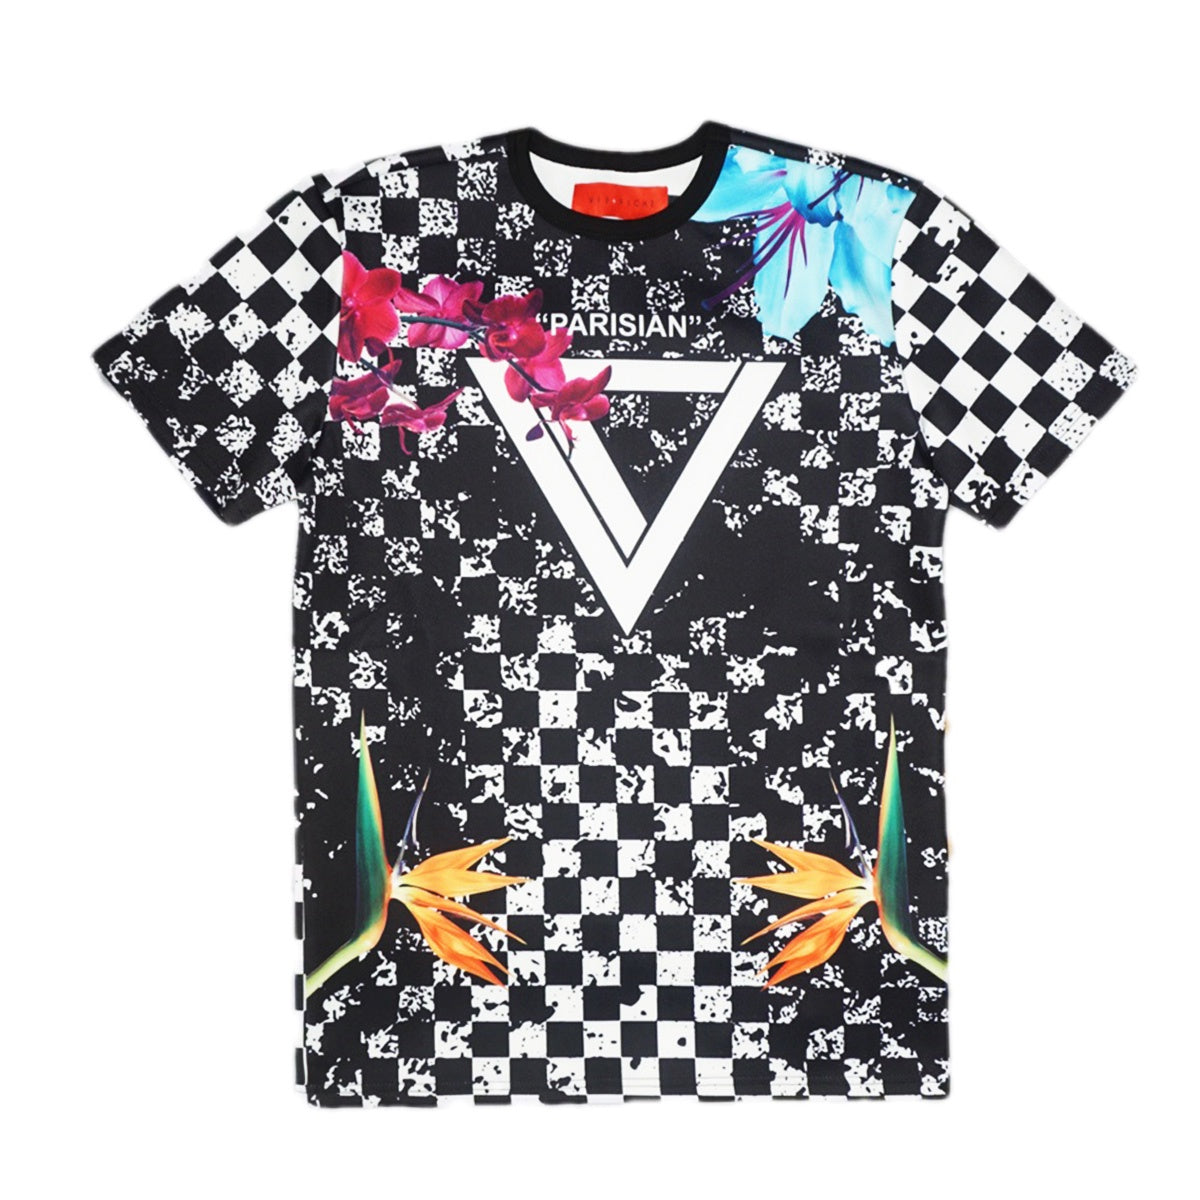 Dirty Checkers T-Shirt (Black)